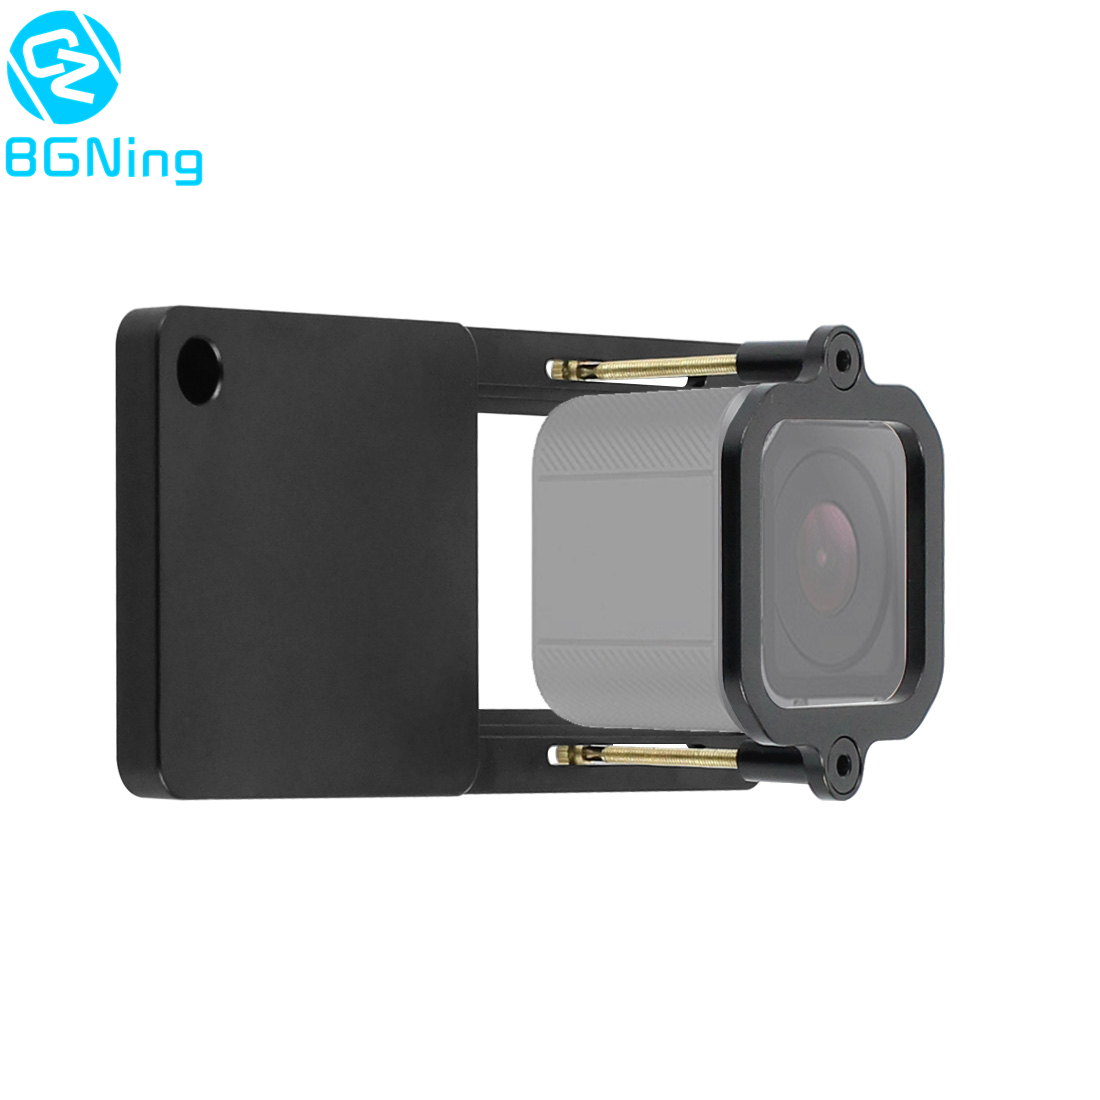 Aluminum Sports Camera Bracket Switch Adapter Plate For Gopro Hero 7 6 5 4 Session Tripod Stabilizer Gimbal Mount Connector